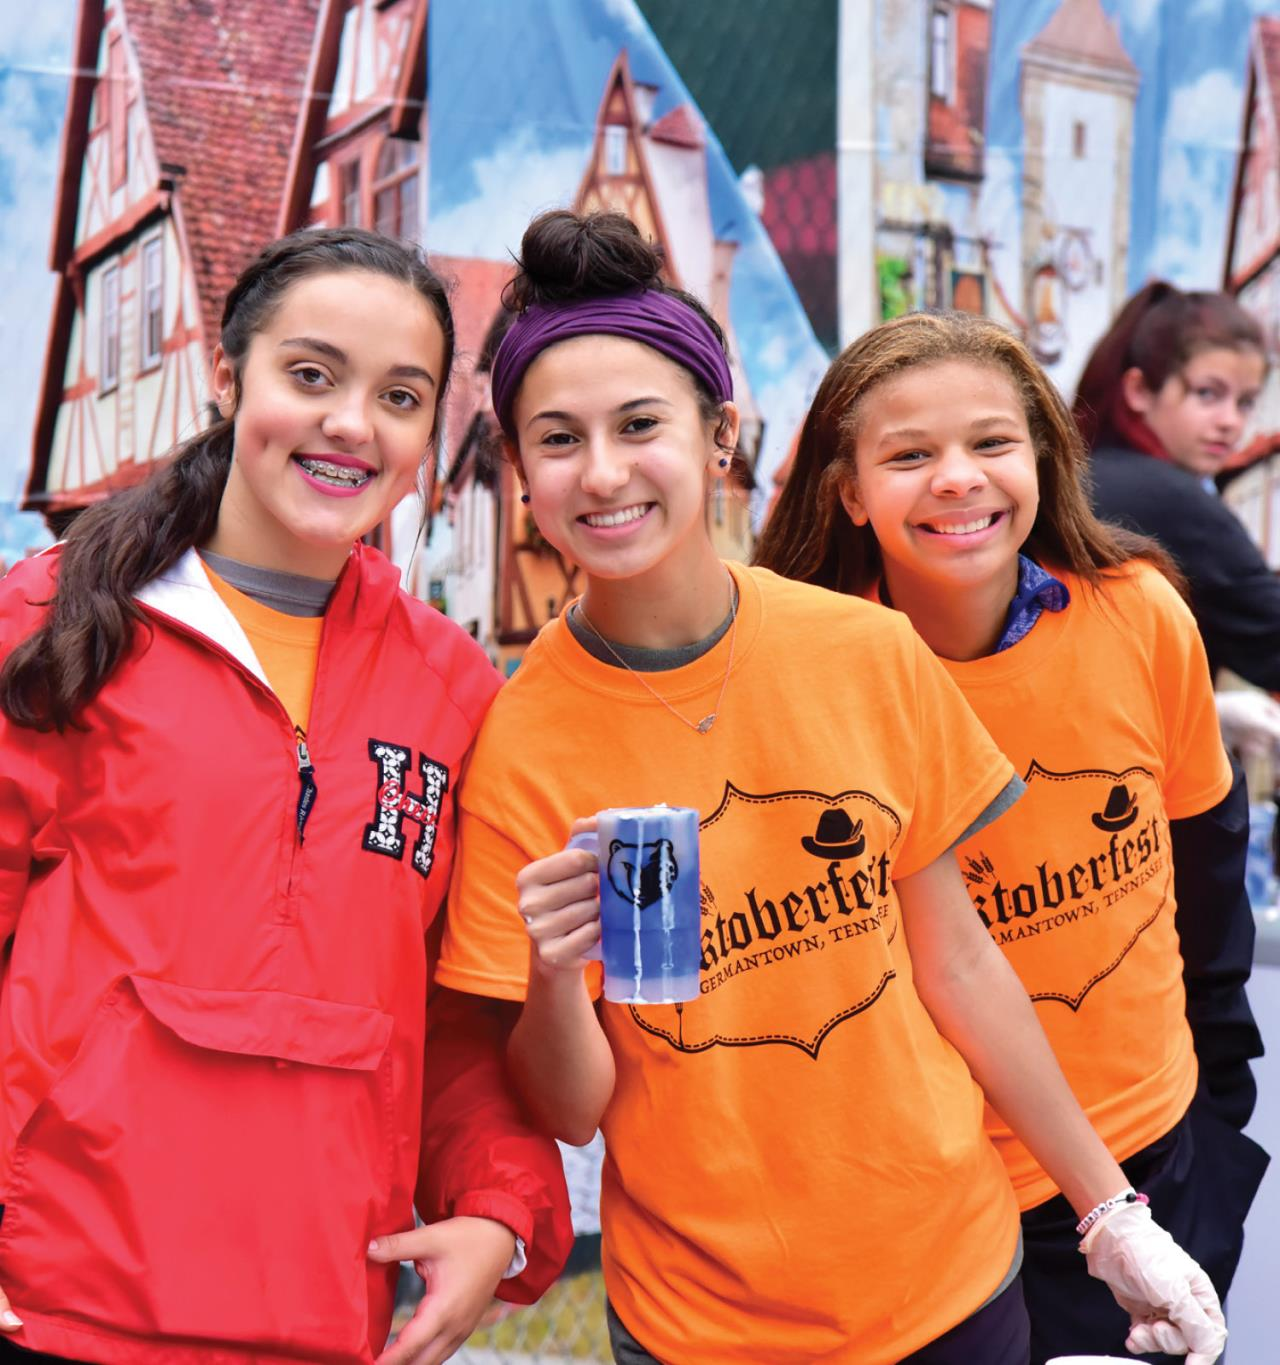 tghree smiling girls volunteer at Oktoberfest